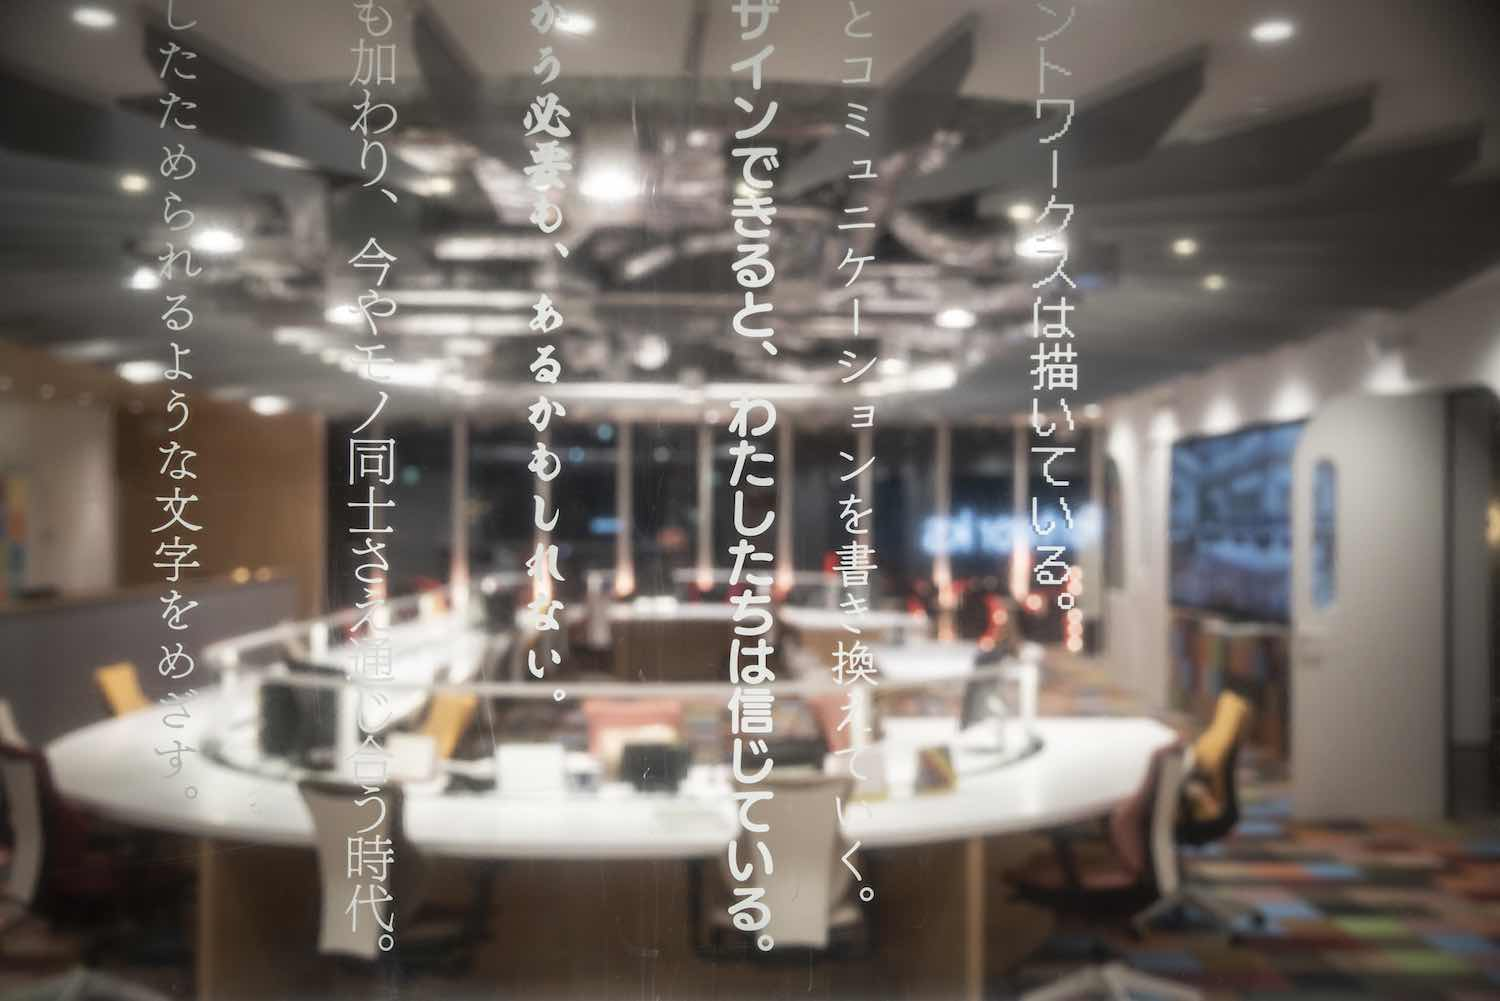 Japanese letters are written on the glass